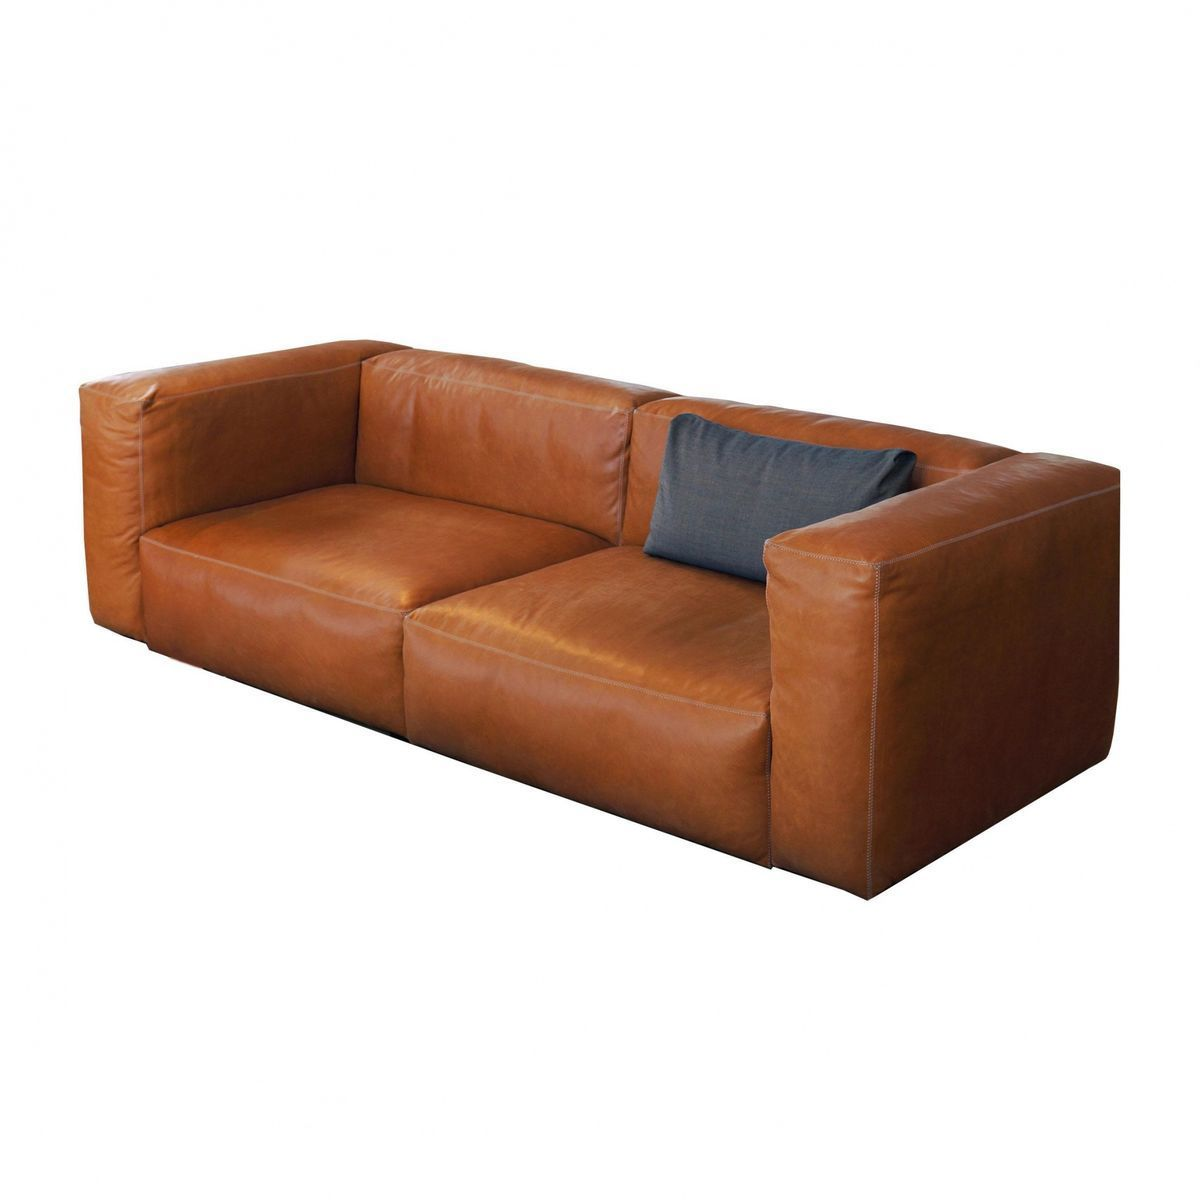 Sofa Without Legs Most Comfortable You Must Ly For